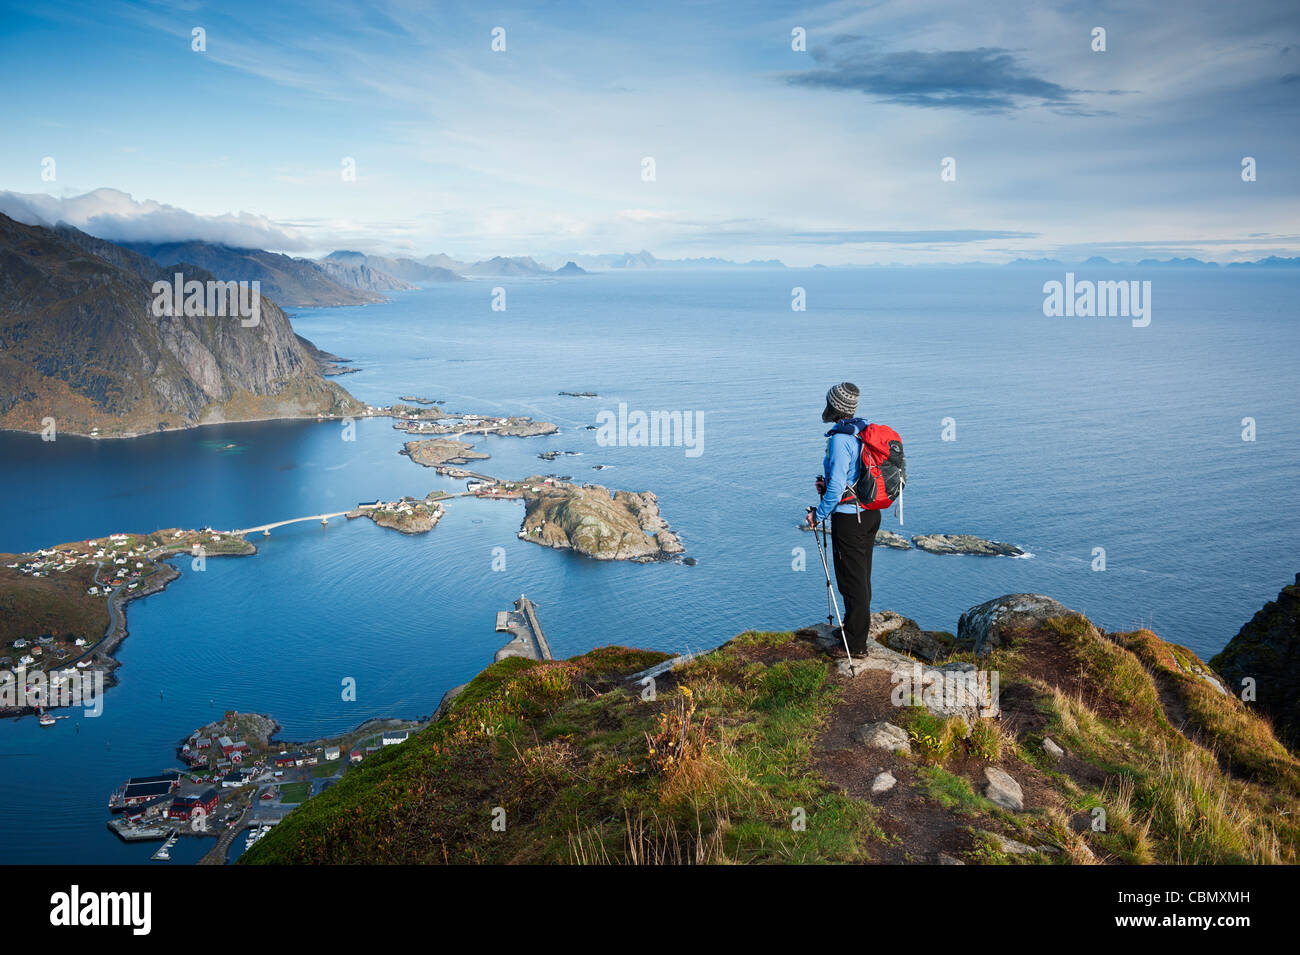 Female hiker enjoys spectacular view over mountains and fjords from Reinebringen, Lofoten islands, Norway Stock Photo